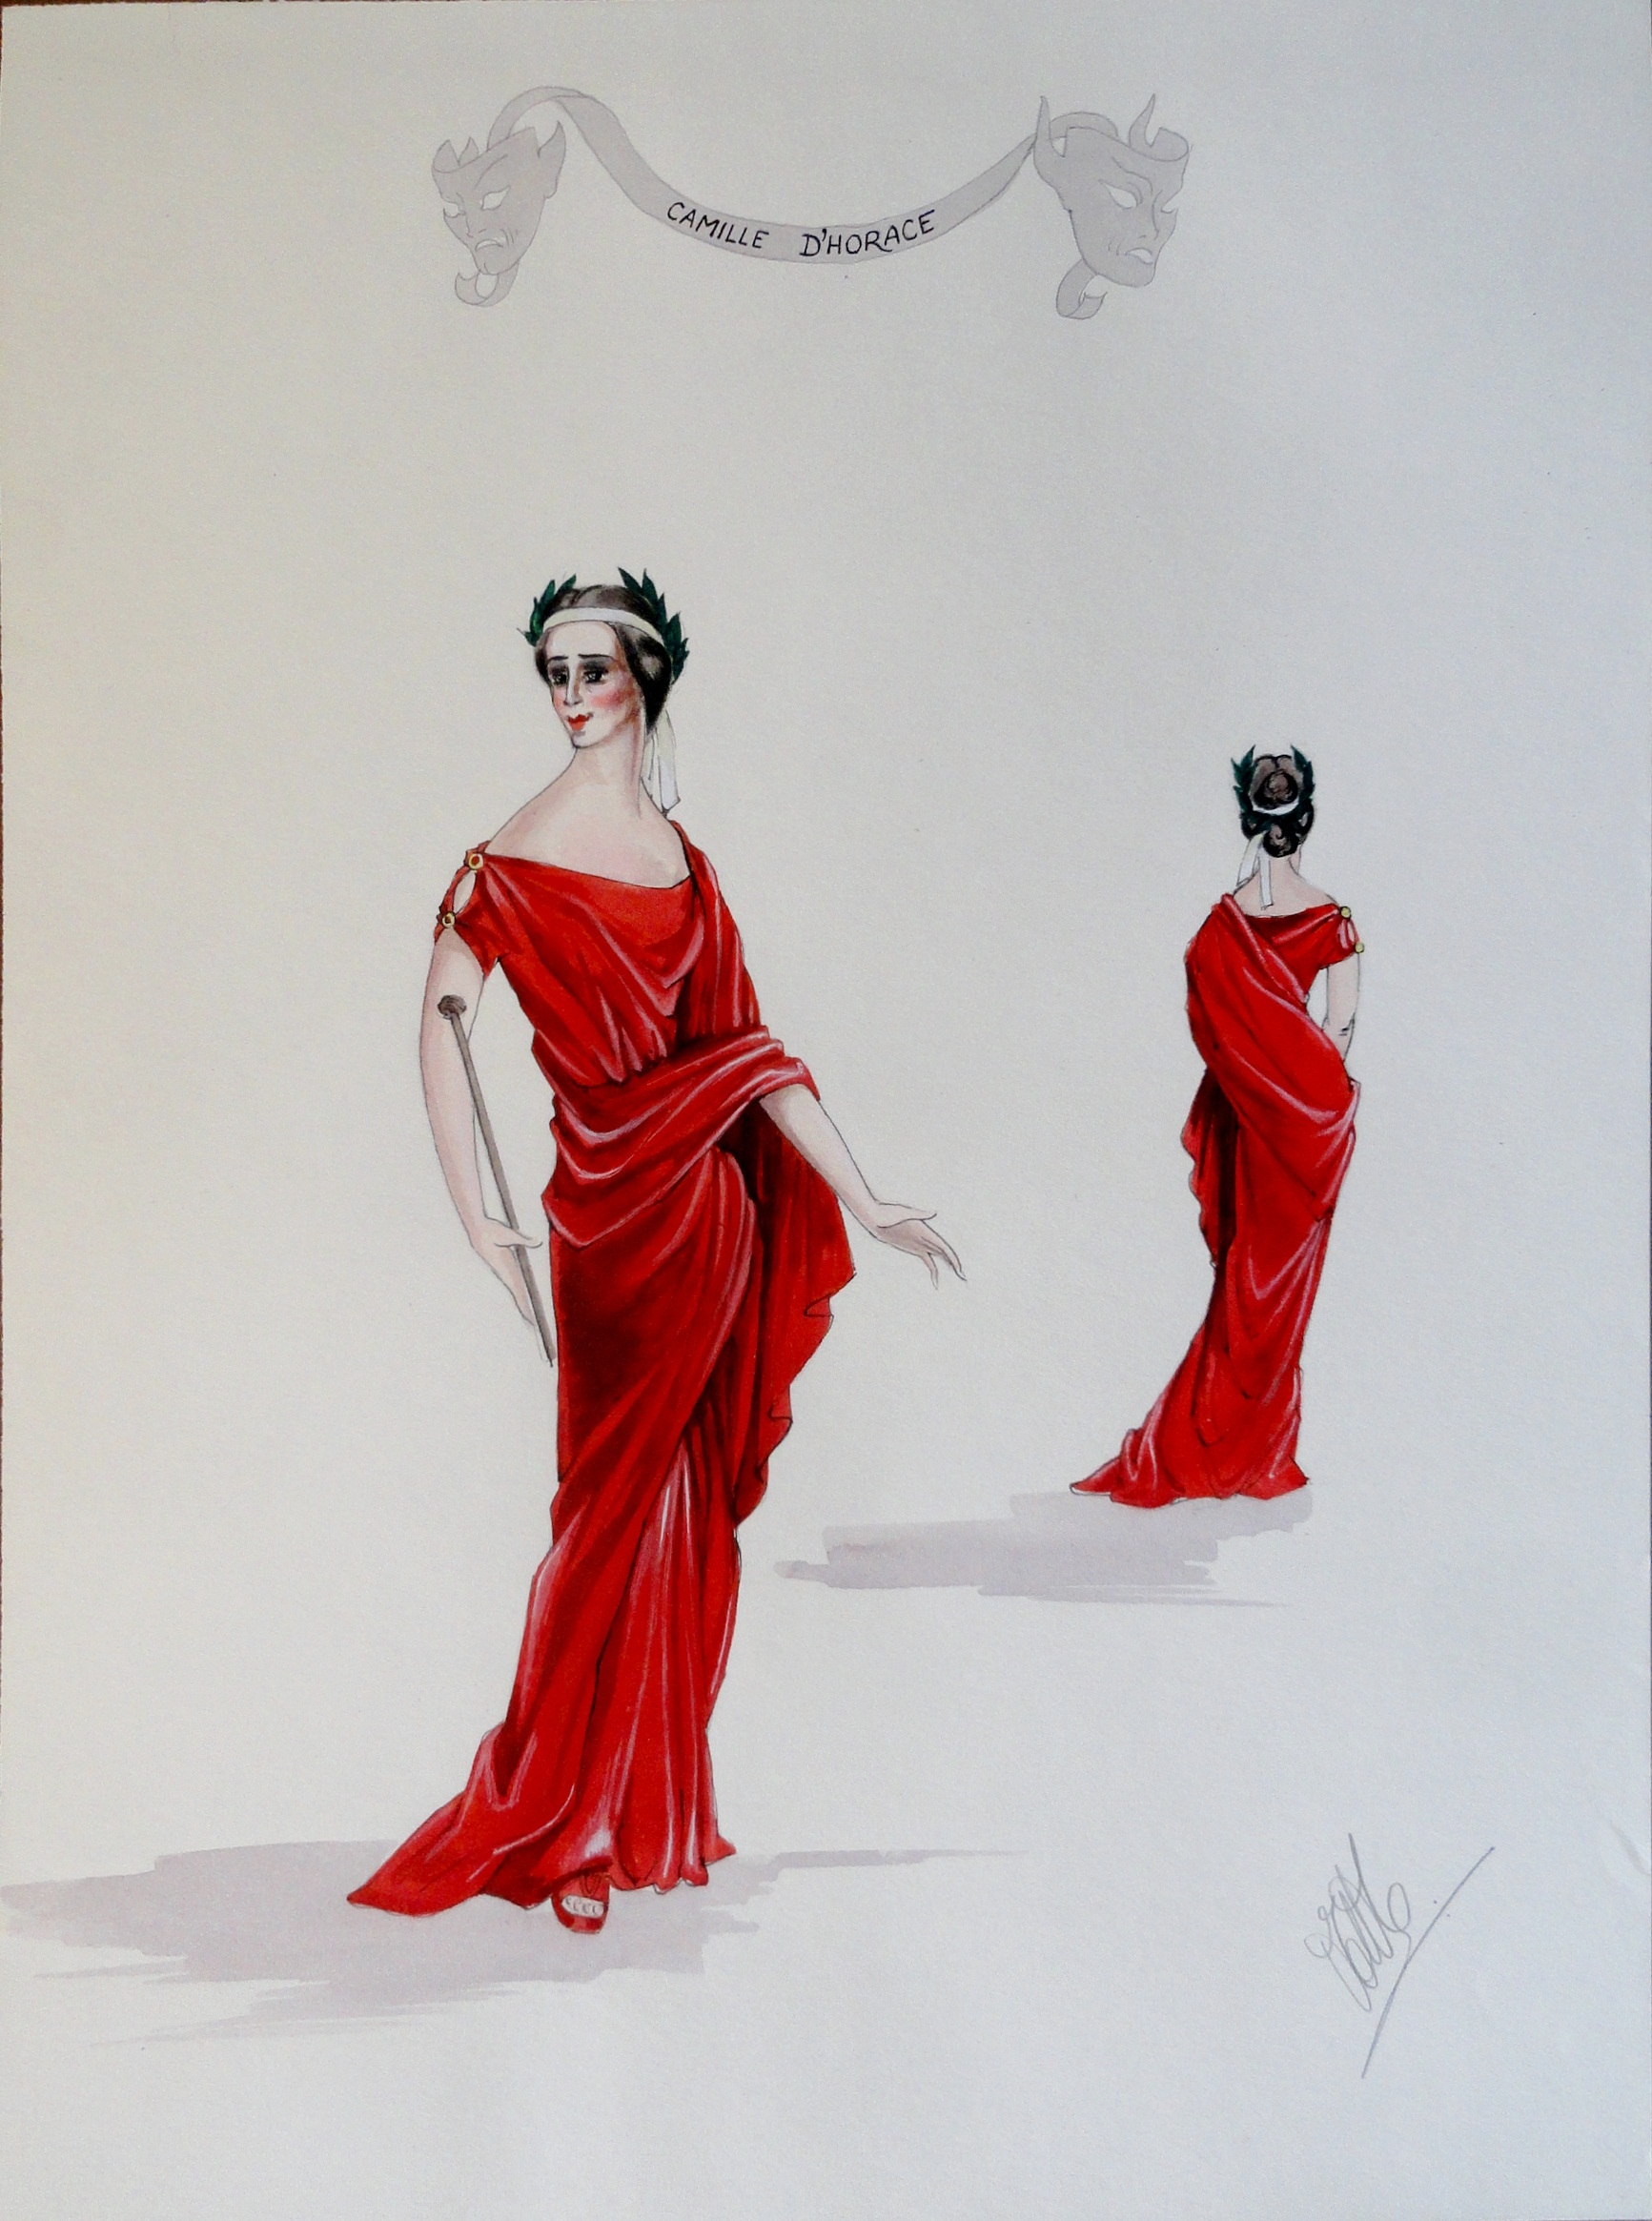 Rachel as Camille d'Horace in red grecian revival dress. Pen and Ink and Gouache. From the Rachel Portfolio by Owen Hyde Clark.